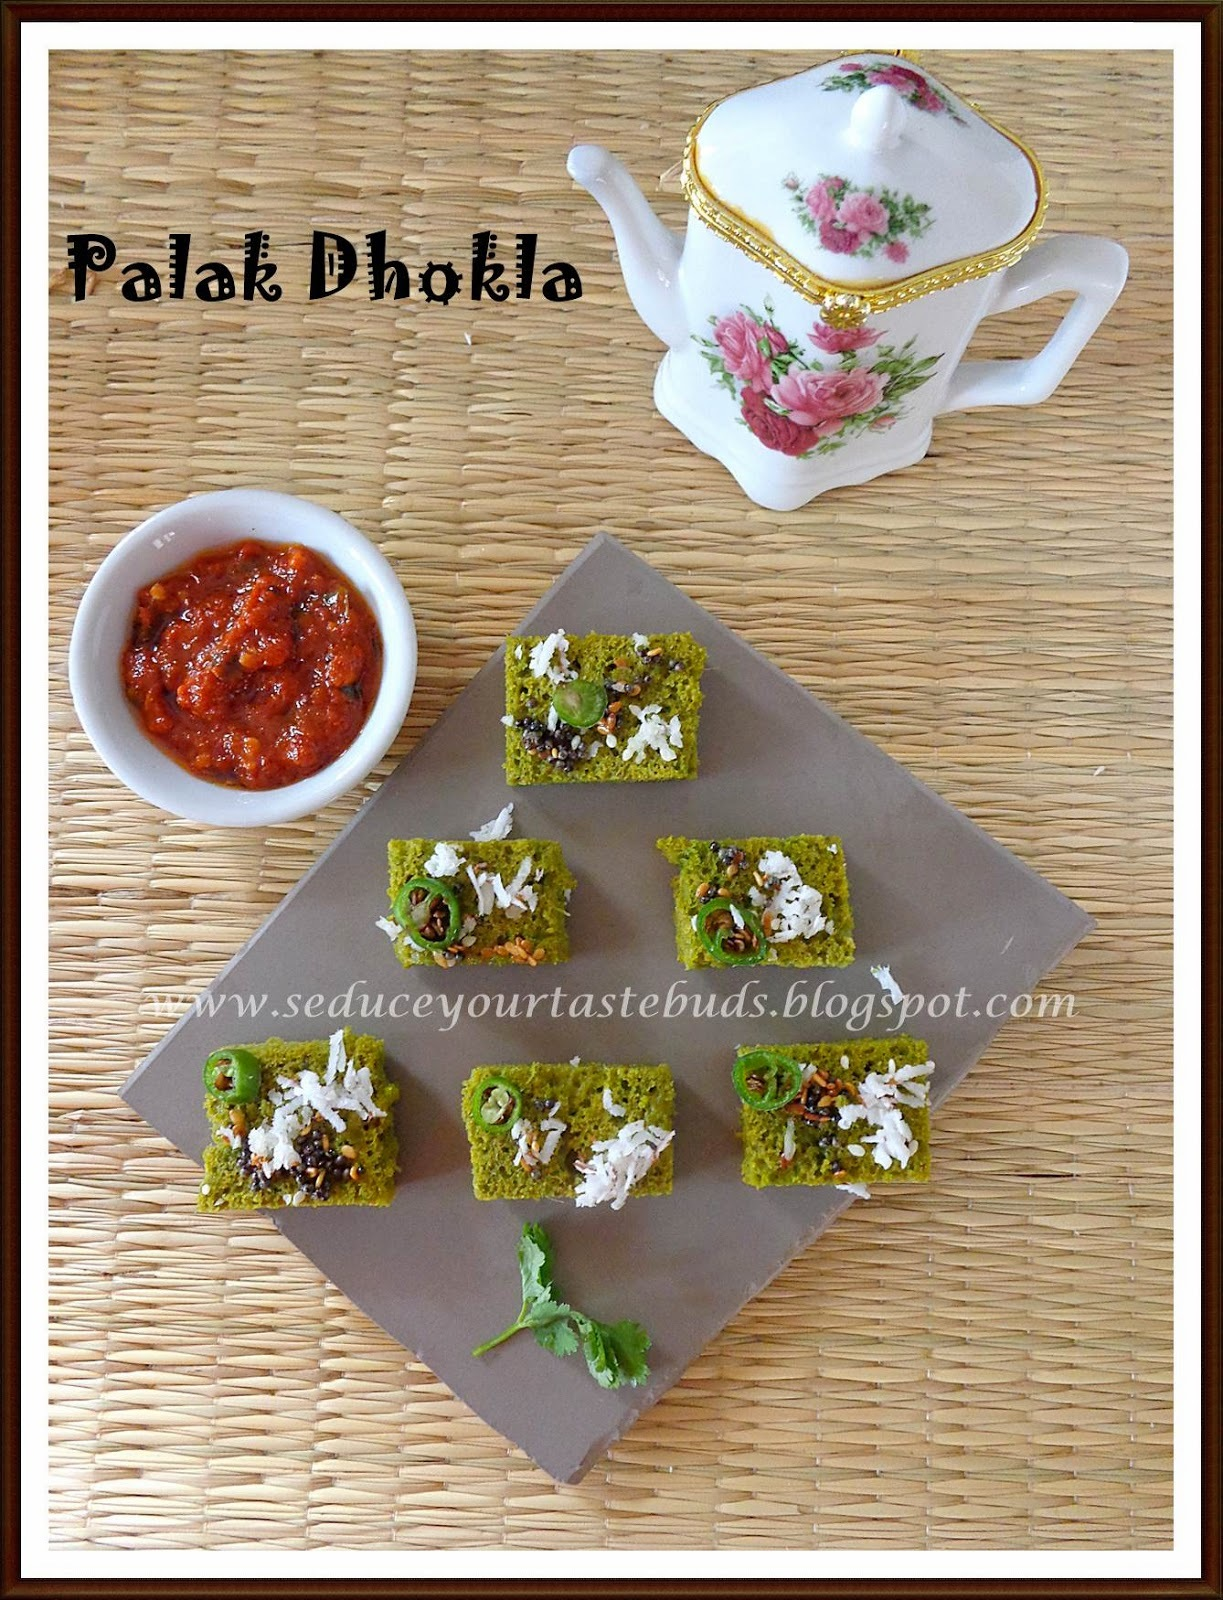 Palak Dhokla - Two ways...